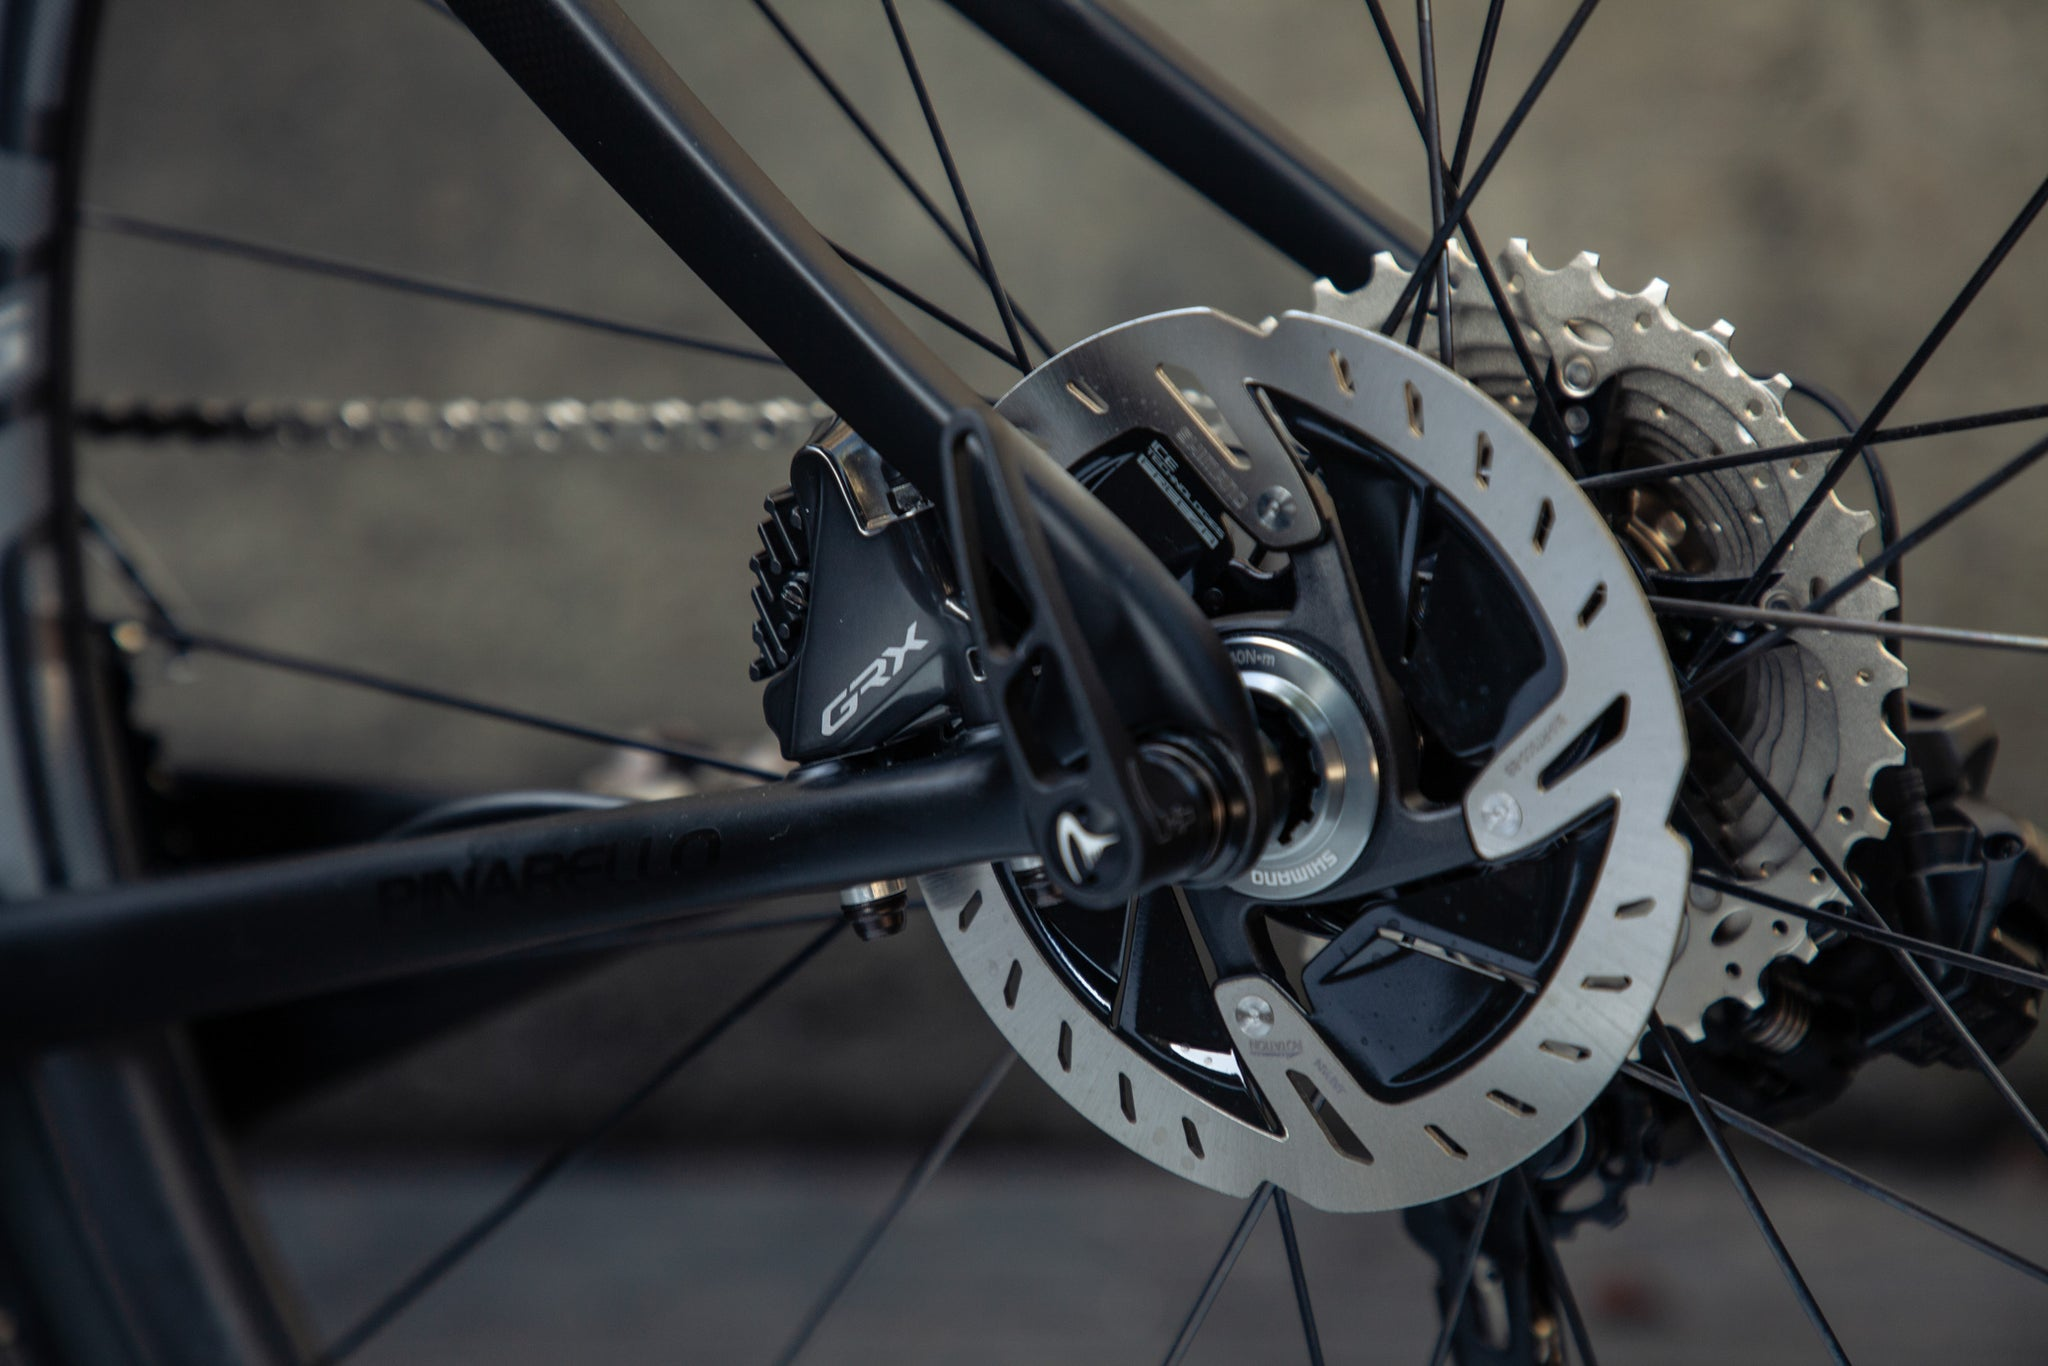 grevil plus grx enve rear brake